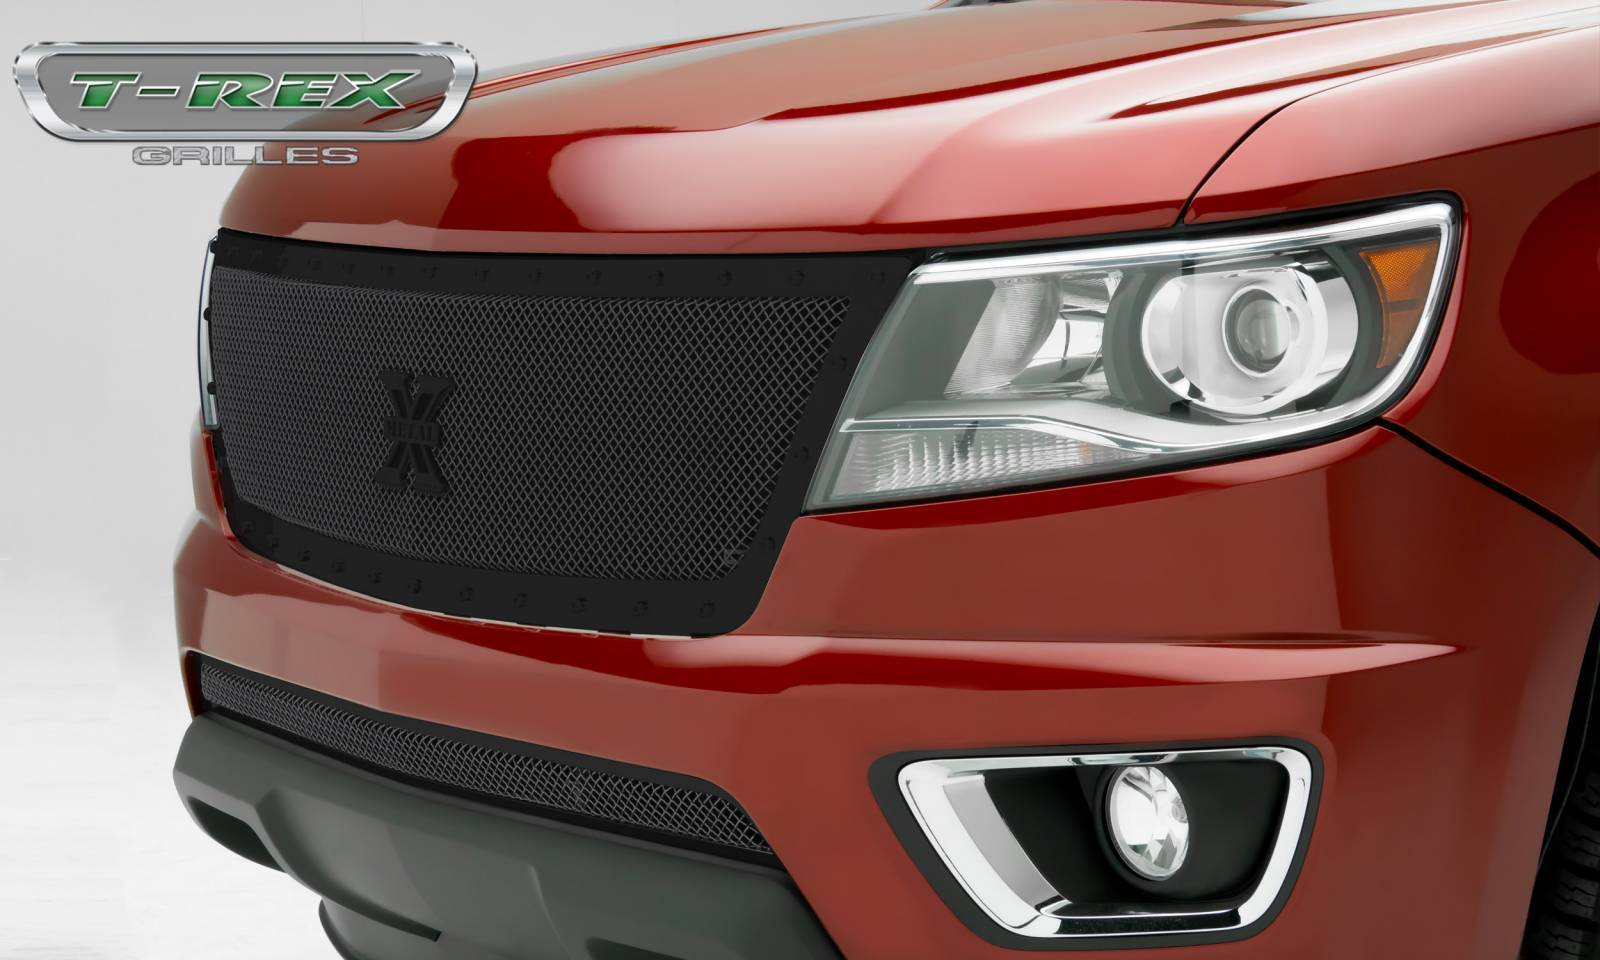 T-REX Grilles - Chevrolet Colorado - X-Metal Series - Main Grille with Black Powdercoat Finish - Pt # 6712671-BR